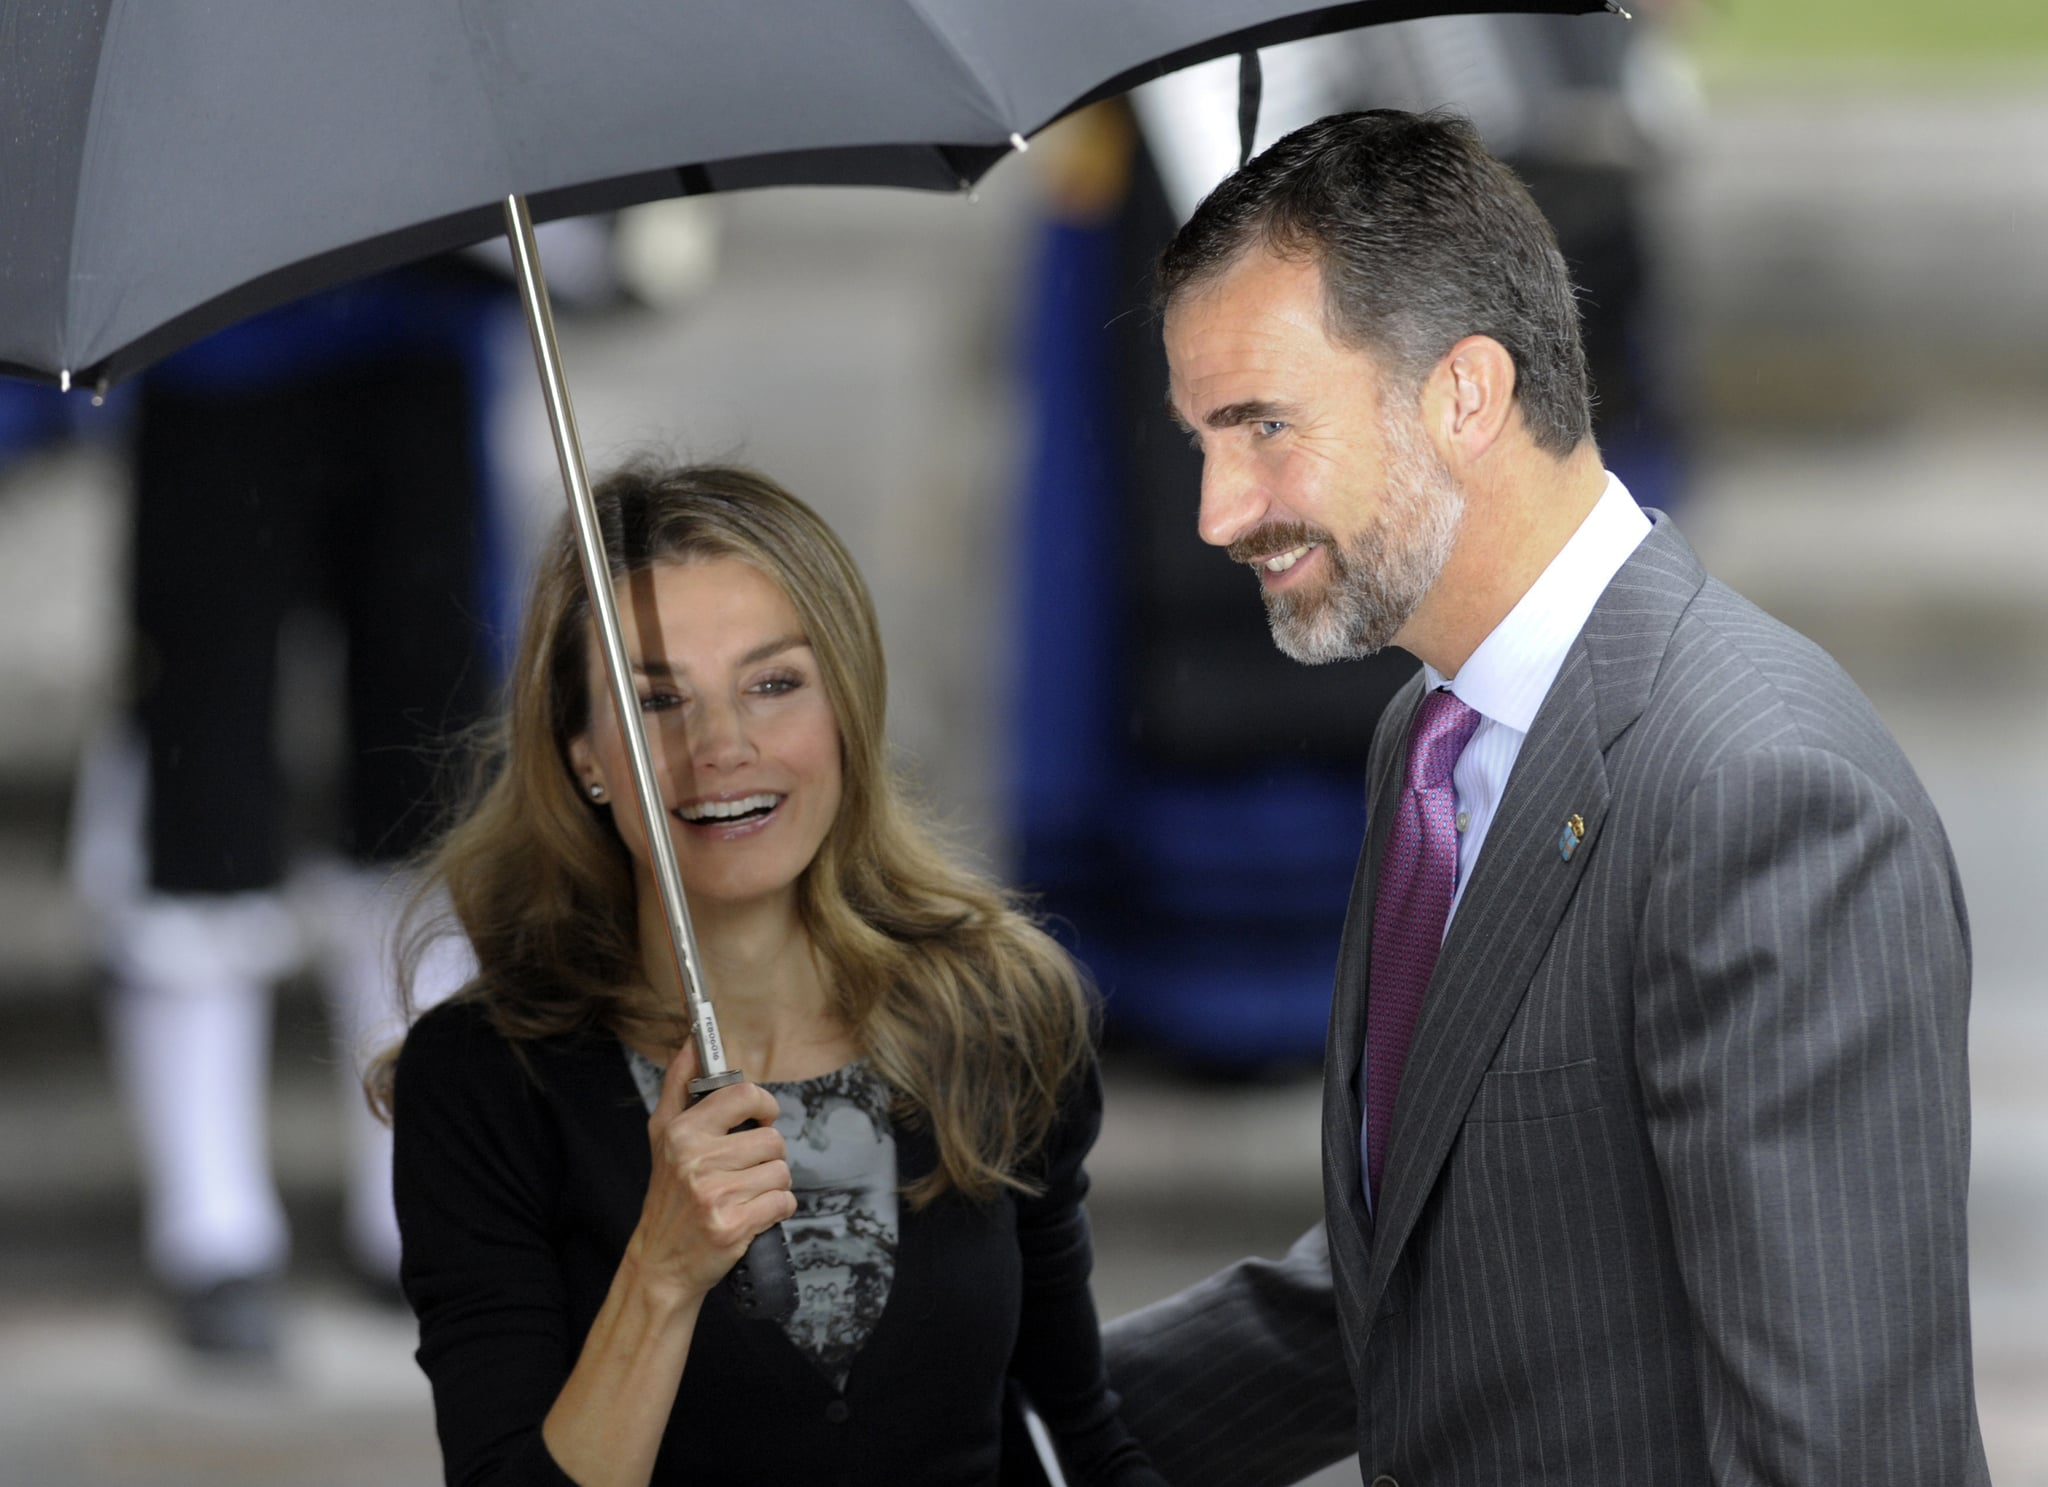 Princess Letizia and Prince Felipe shared a laugh on a rainy day in October 2013.